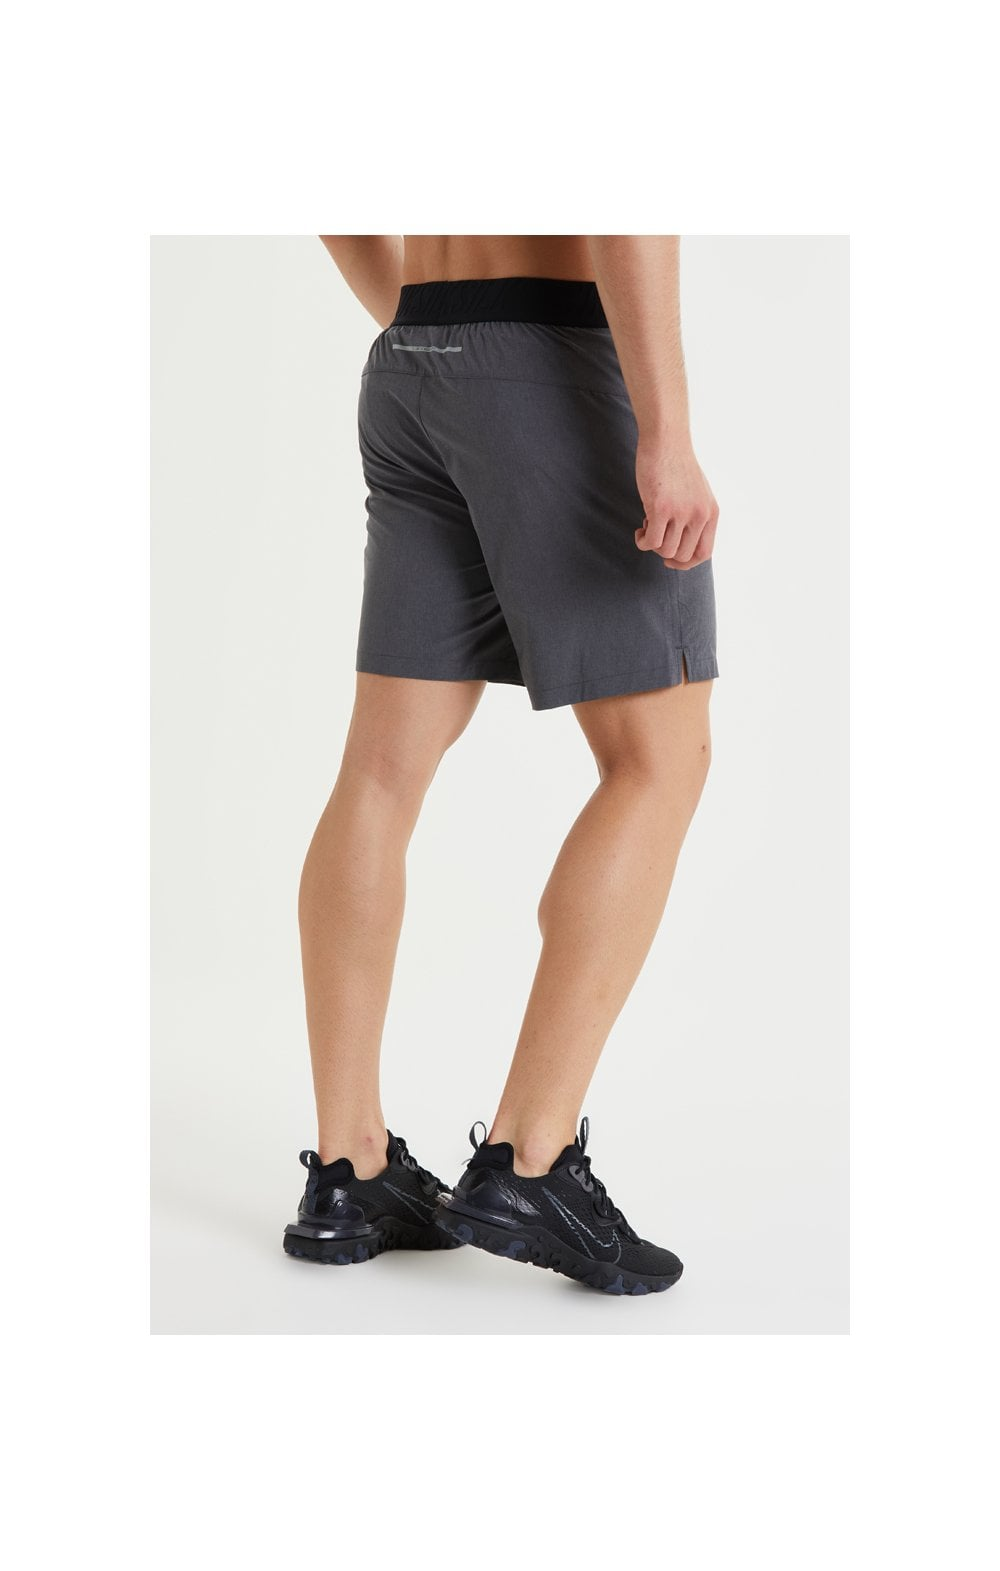 SikSilk Pressure Woven Long Shorts - Charcoal Marl (4)